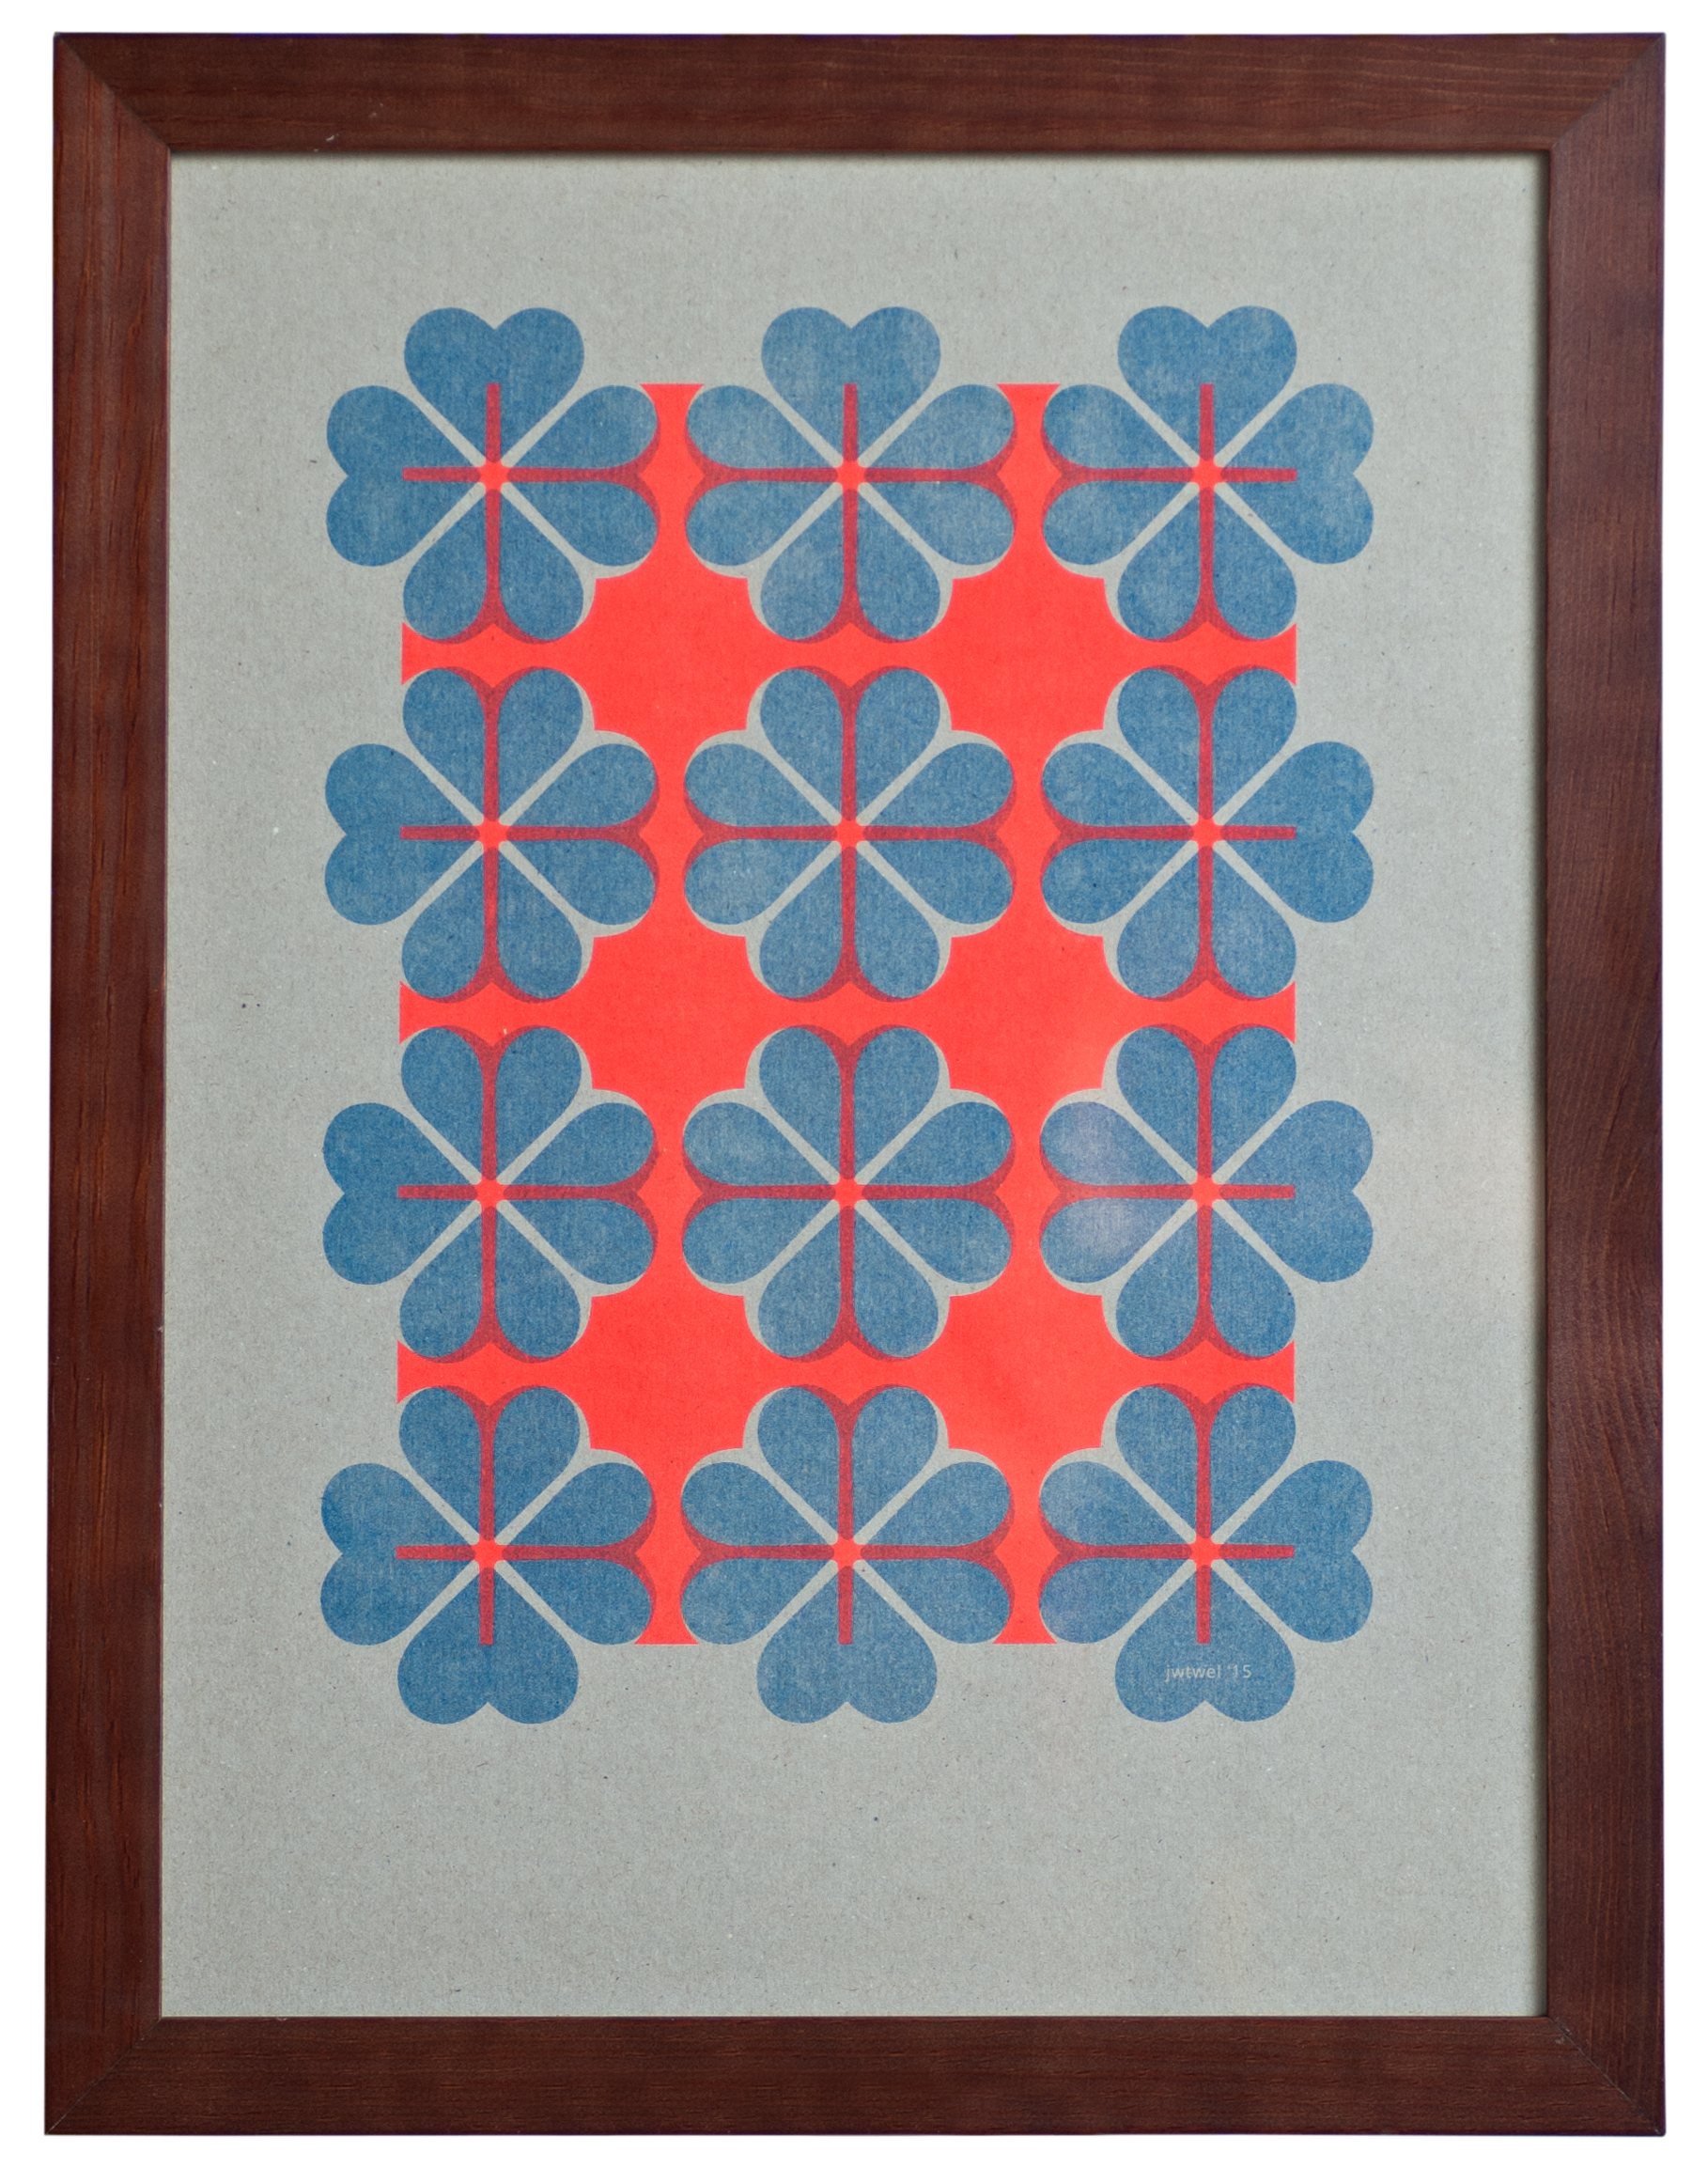 2 color poster design - Jwtwel 4heart Pattern A3 Poster 2 Color Riso Stencilprint Fluor_orange Blue Jwtwel